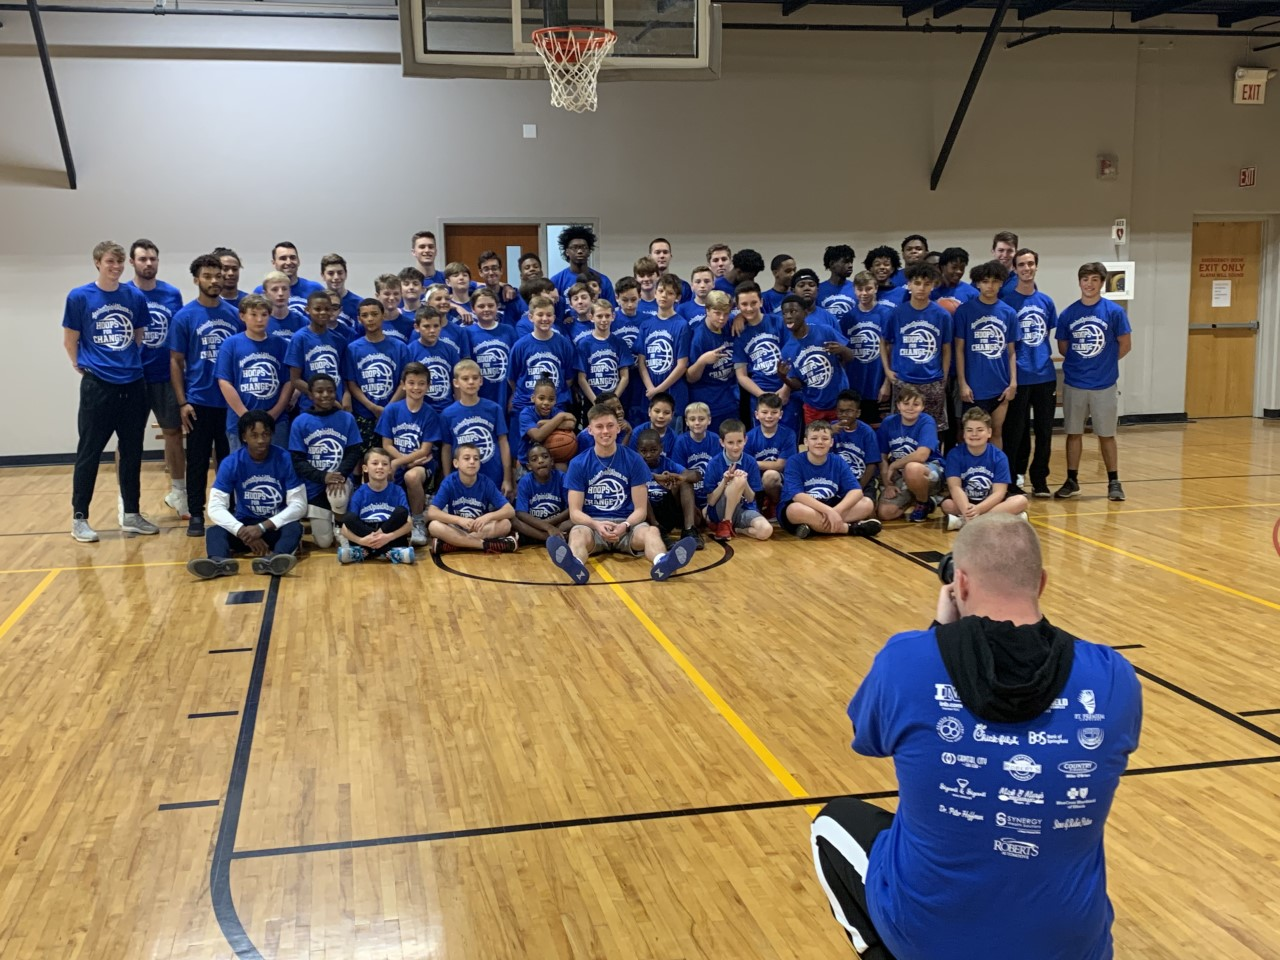 The basketball camp for 5th to 8th graders inspires young athletes to choose a life of positivity